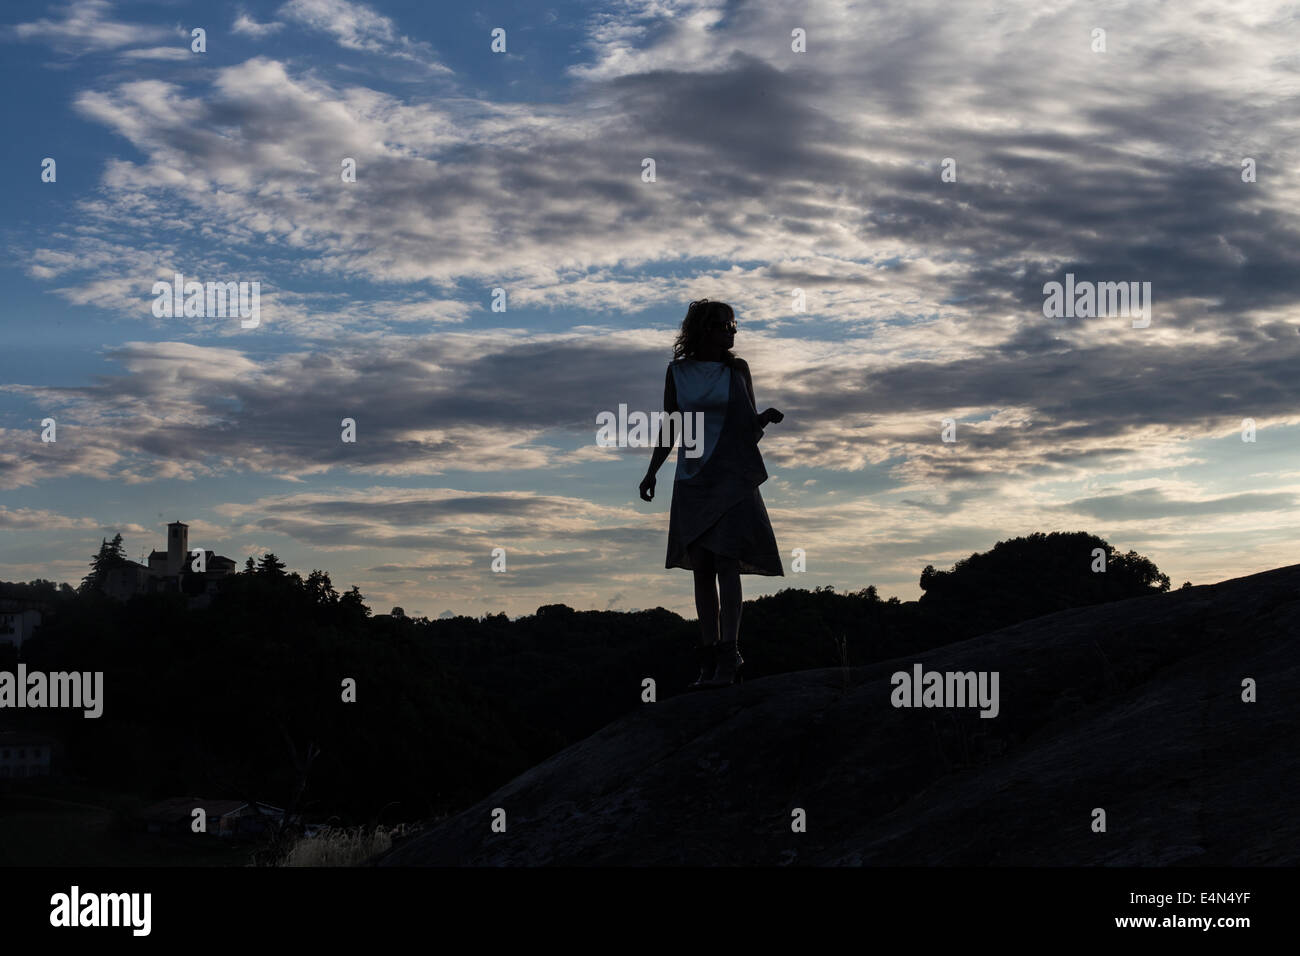 silhouette of a woman lost at sunset in a dress holding a bag with clouds in the background Stock Photo